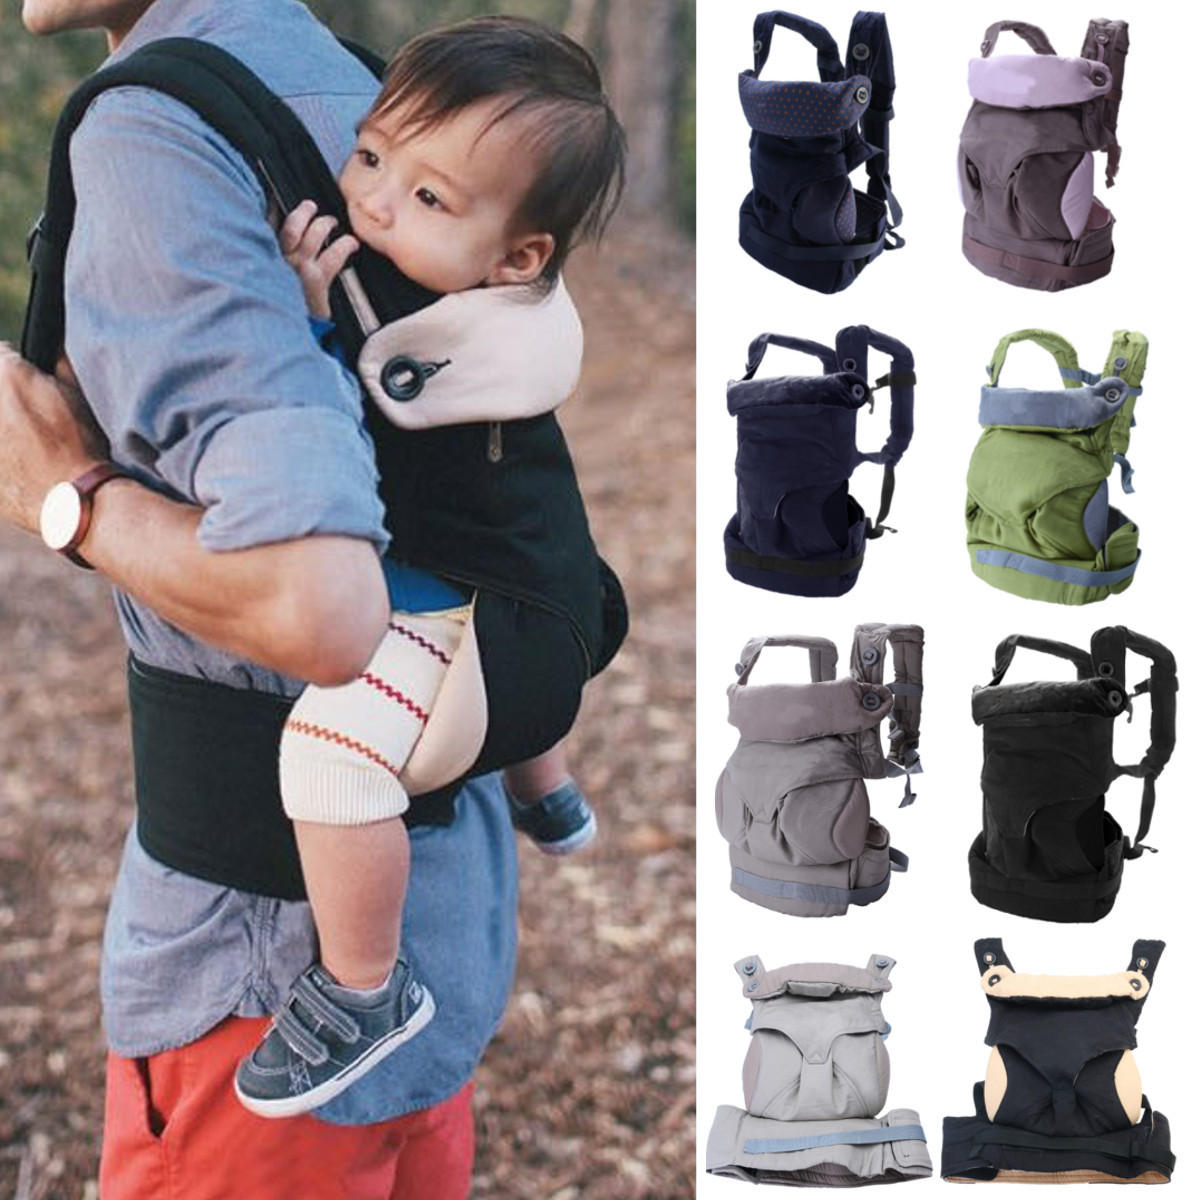 Baby Kids Safety Harness Cotton Walking Rein Carrier Breathable Babys Strap Baby Carriers - 1